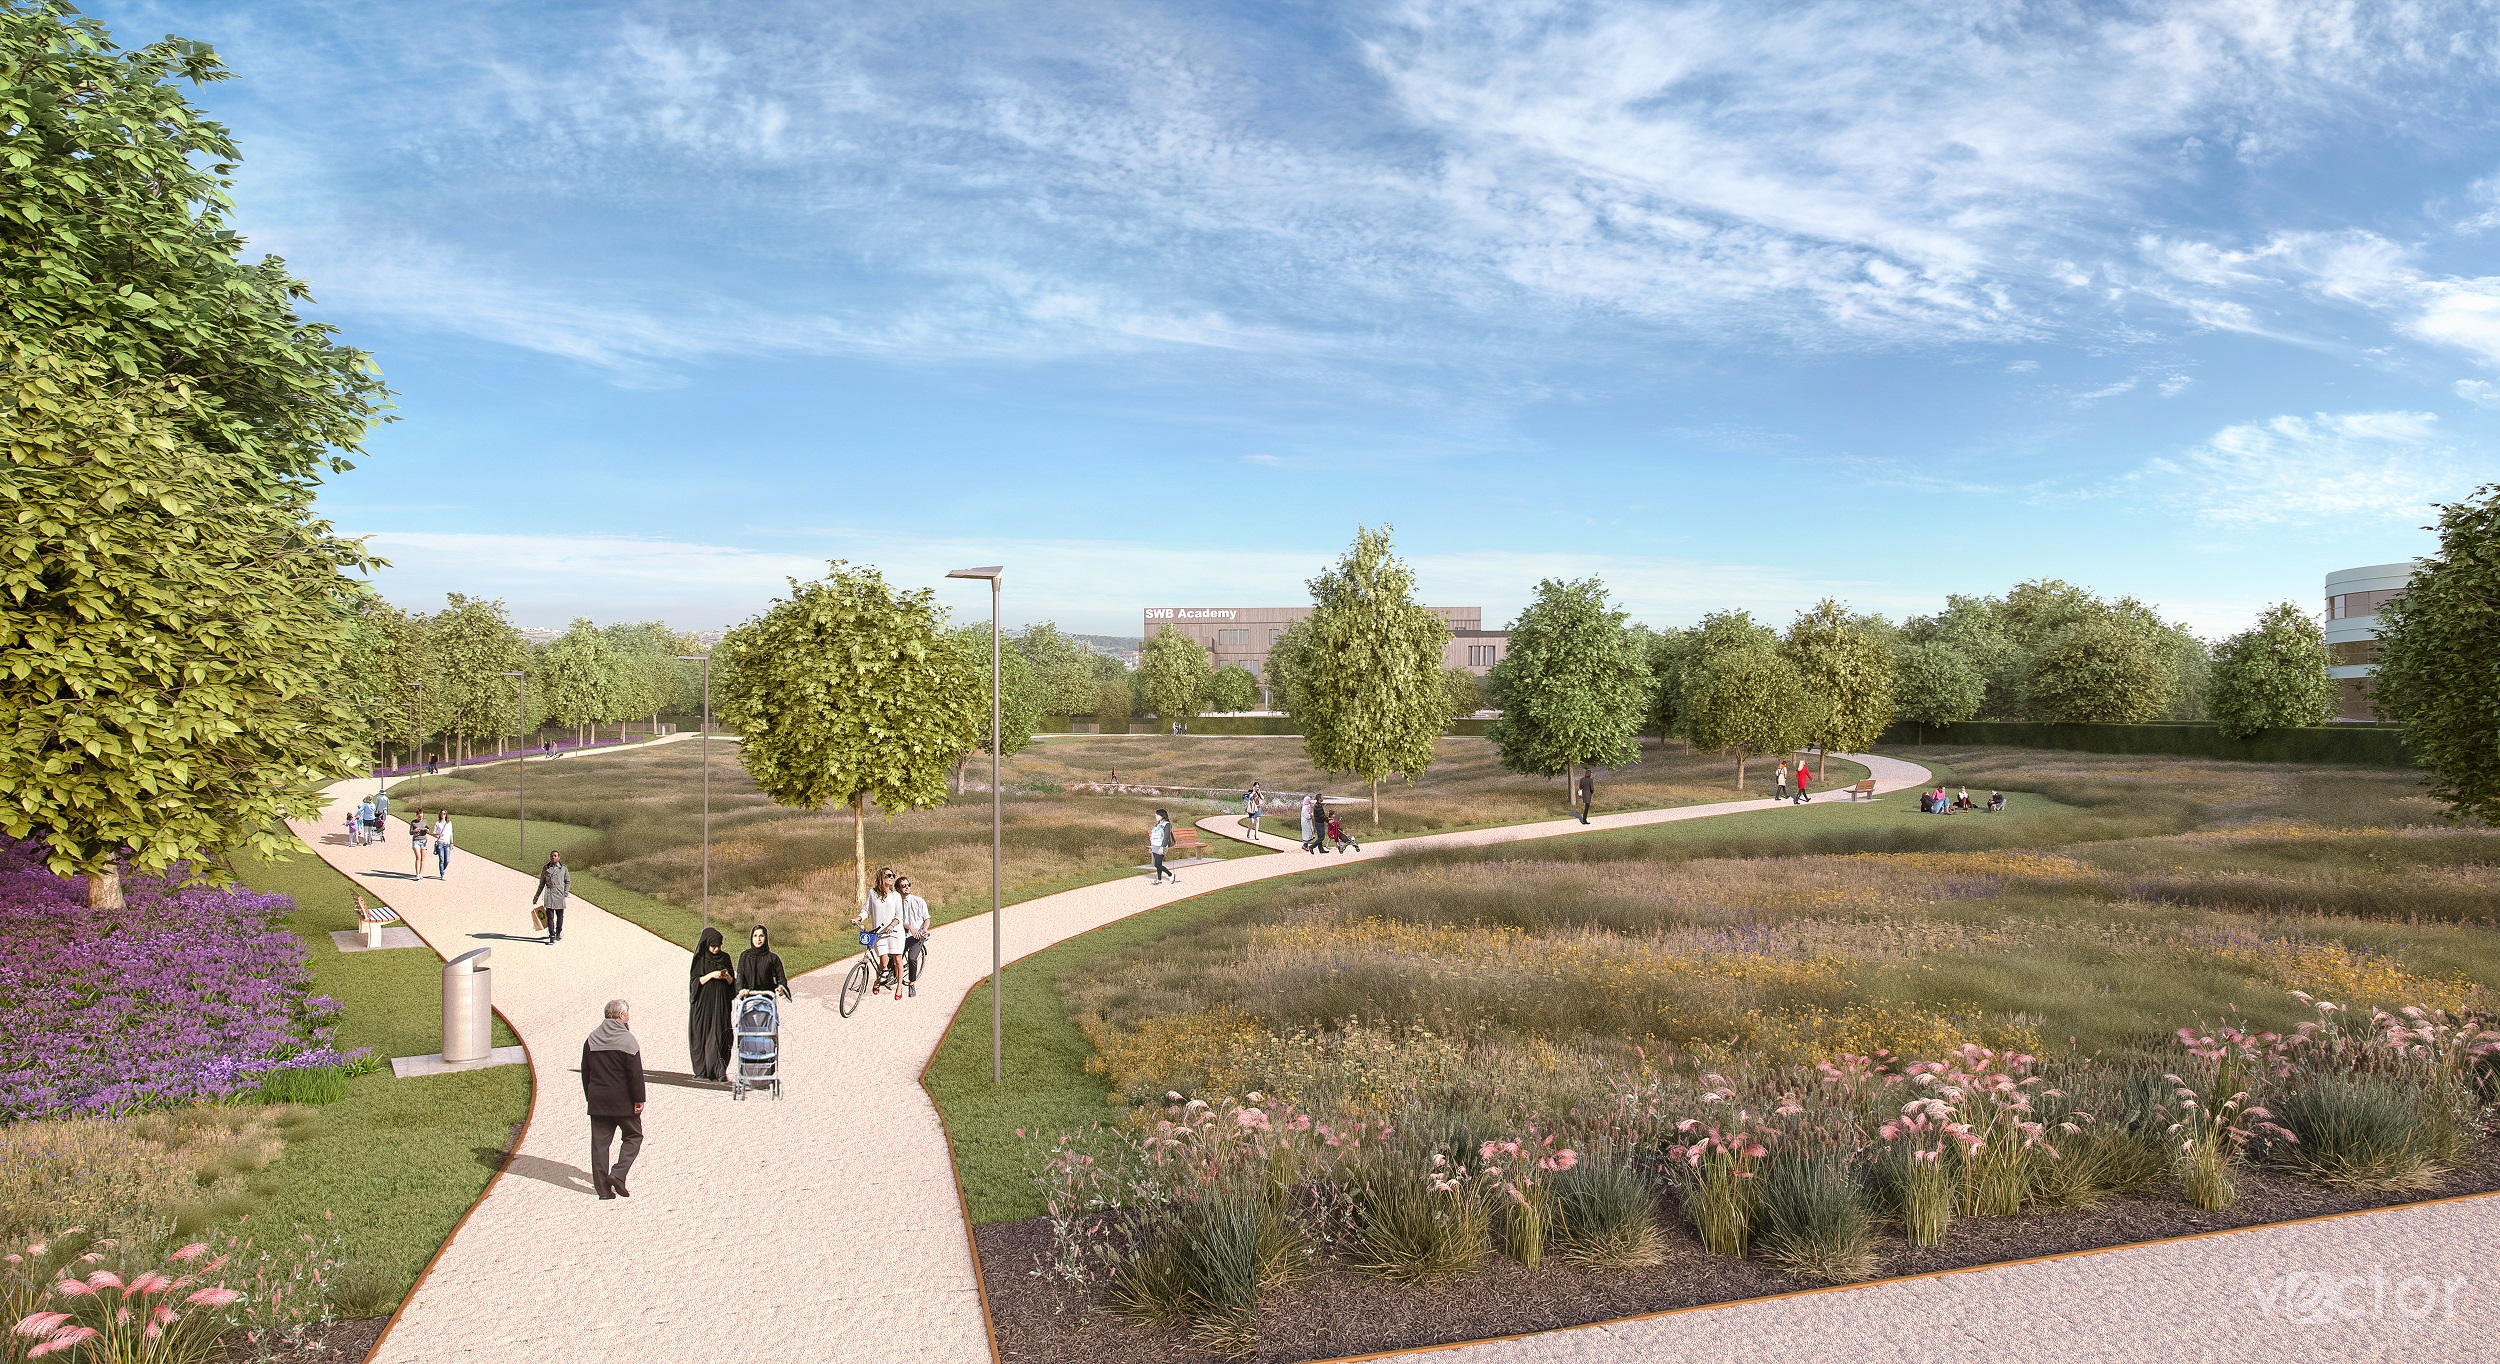 Funding boost for Bilston Urban Village 'Garden City' site